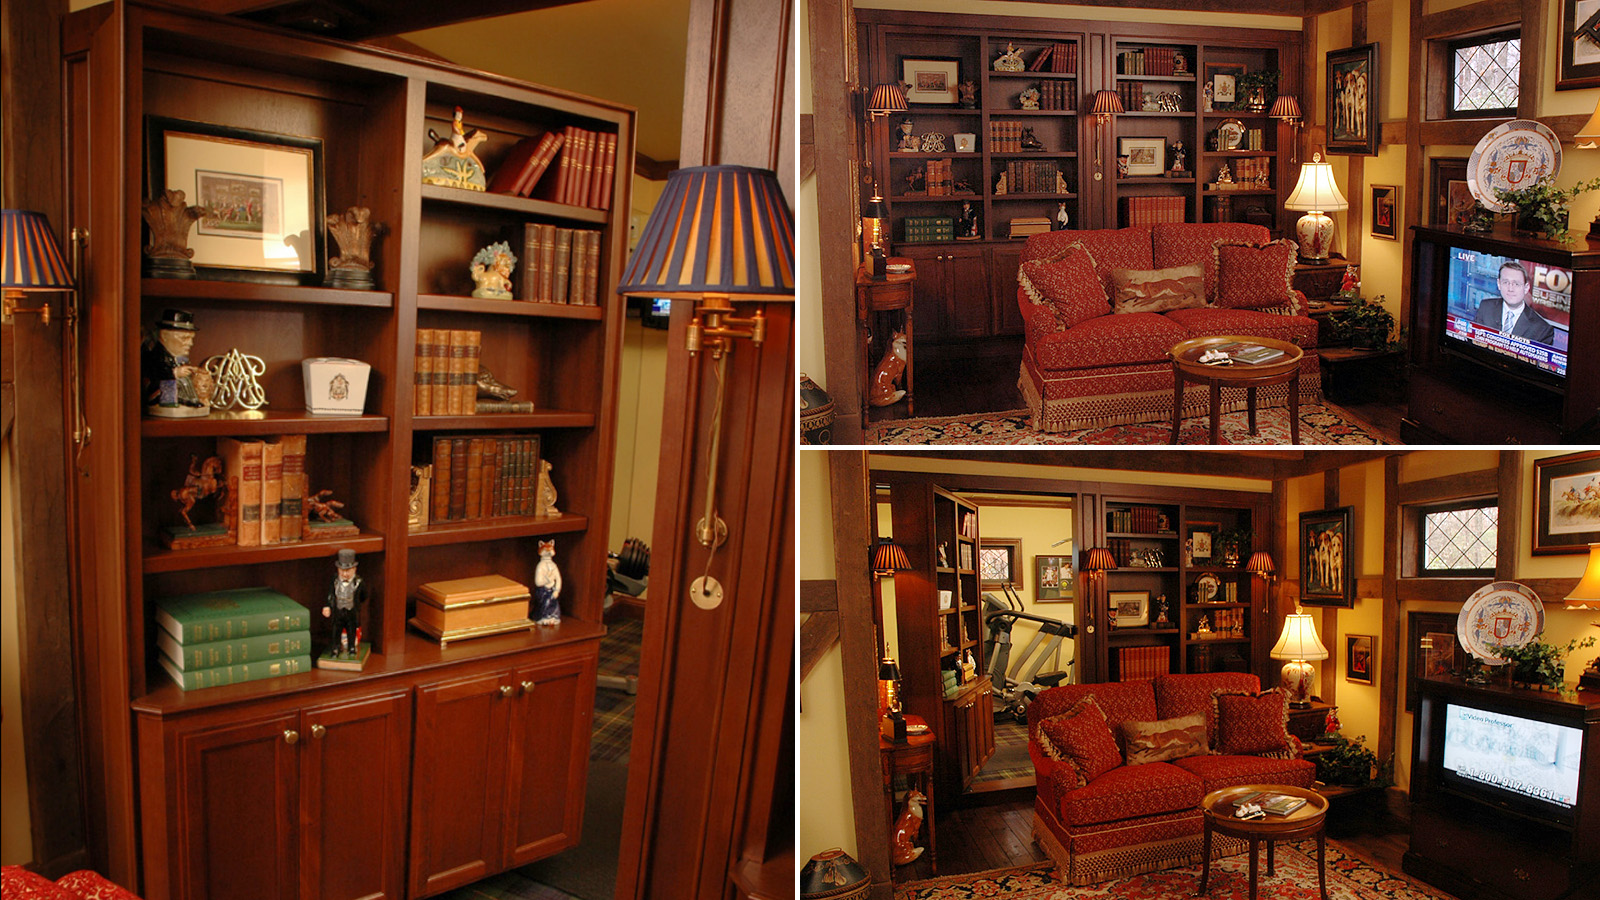 20 Secret Passageways And Hidden Rooms Hiding In Plain